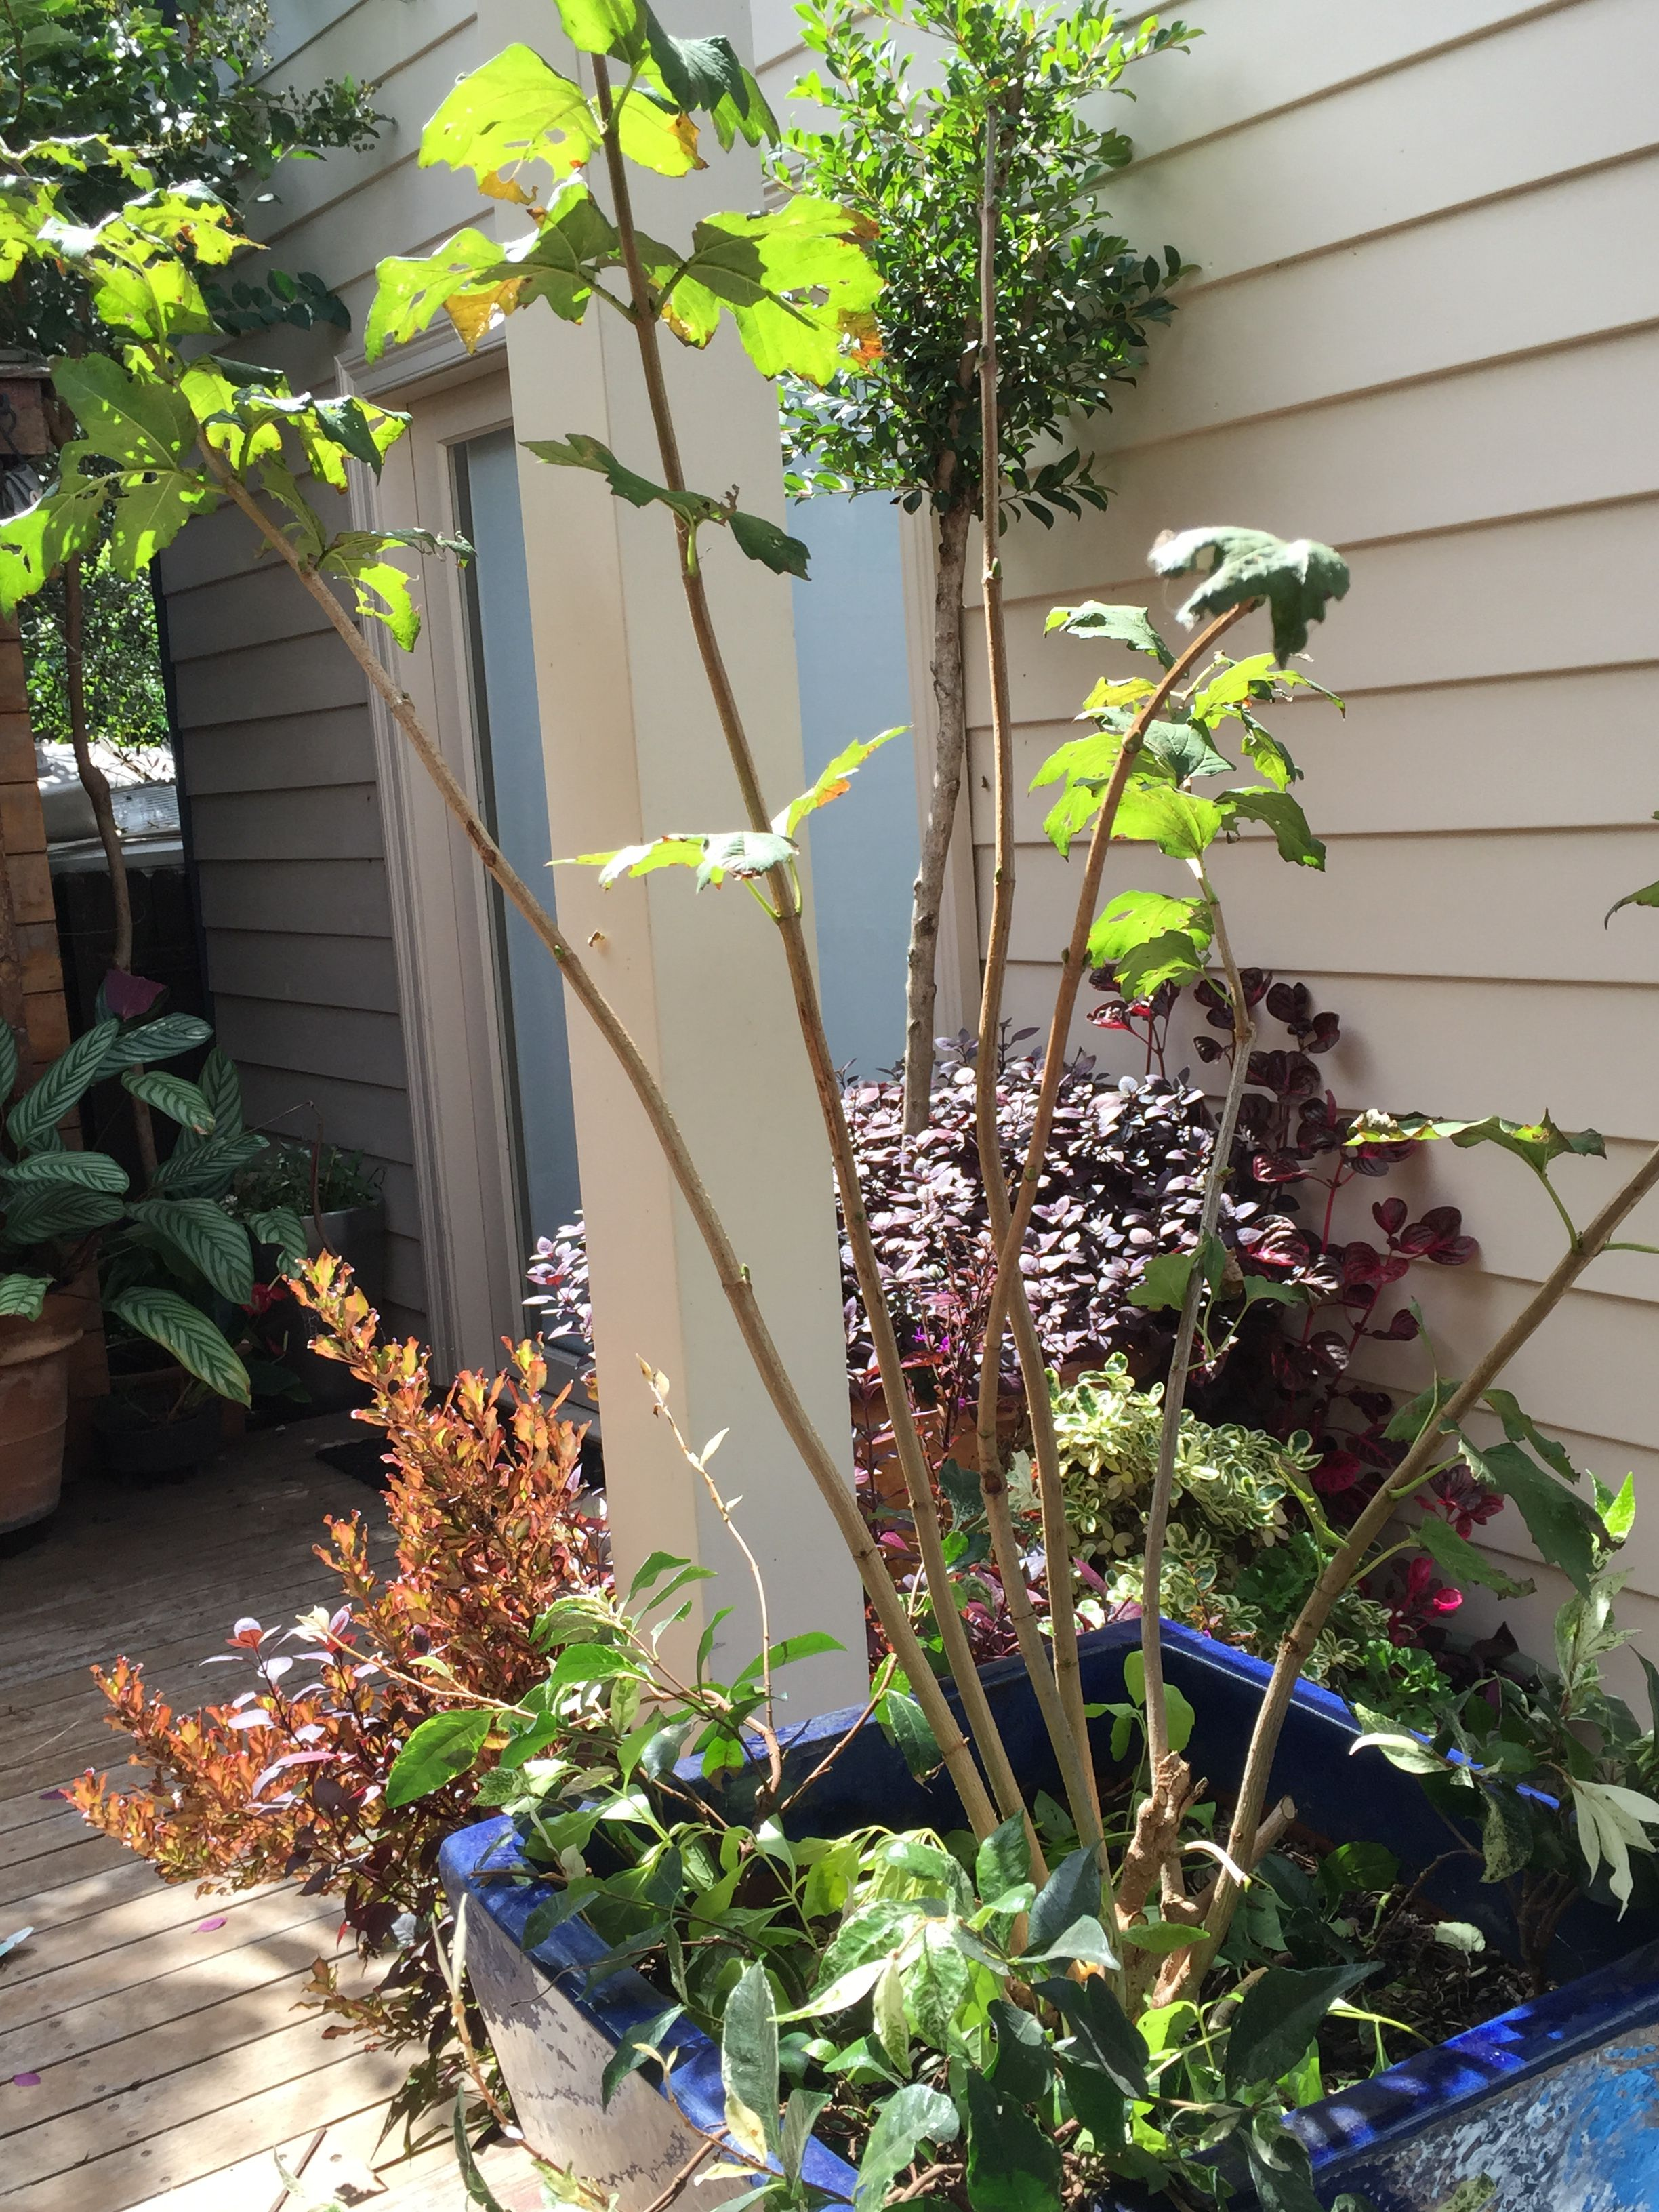 Pin by Bells Me on Small garden ideas #sydney | Small ...